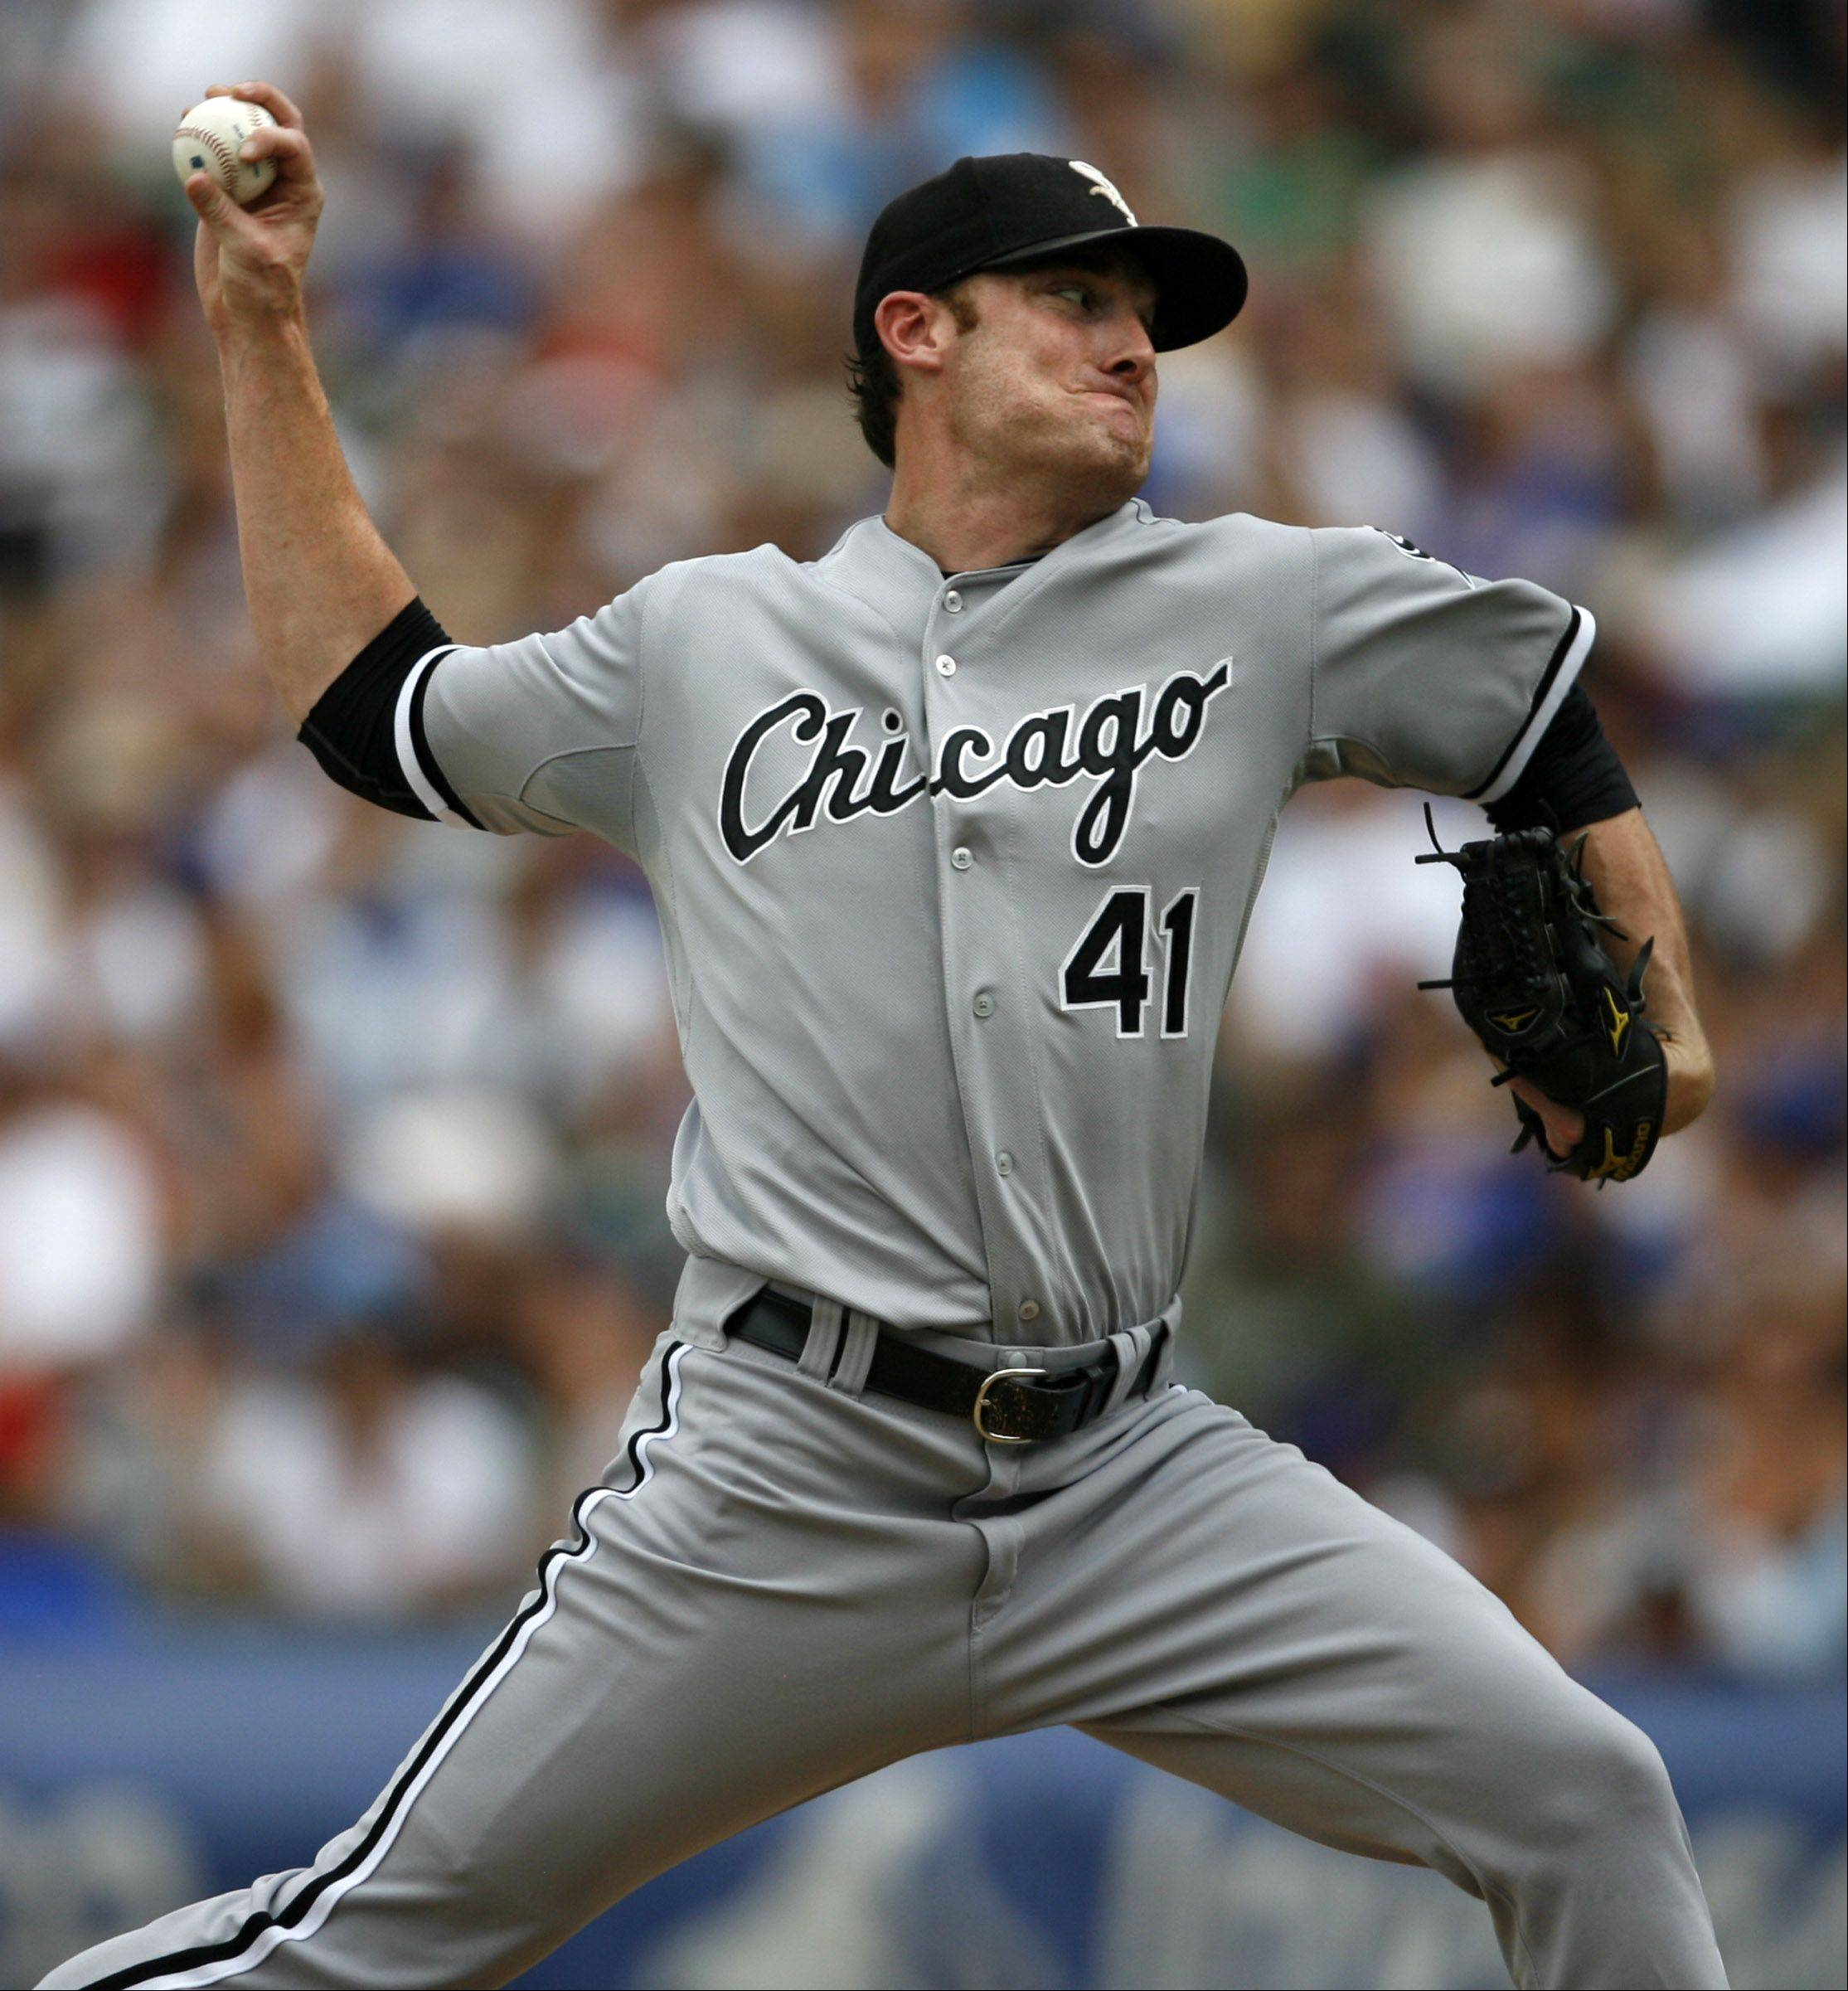 White Sox pitcher Philip Humber wins 1-0 over Cubs at Wrigley Field on Saturday.